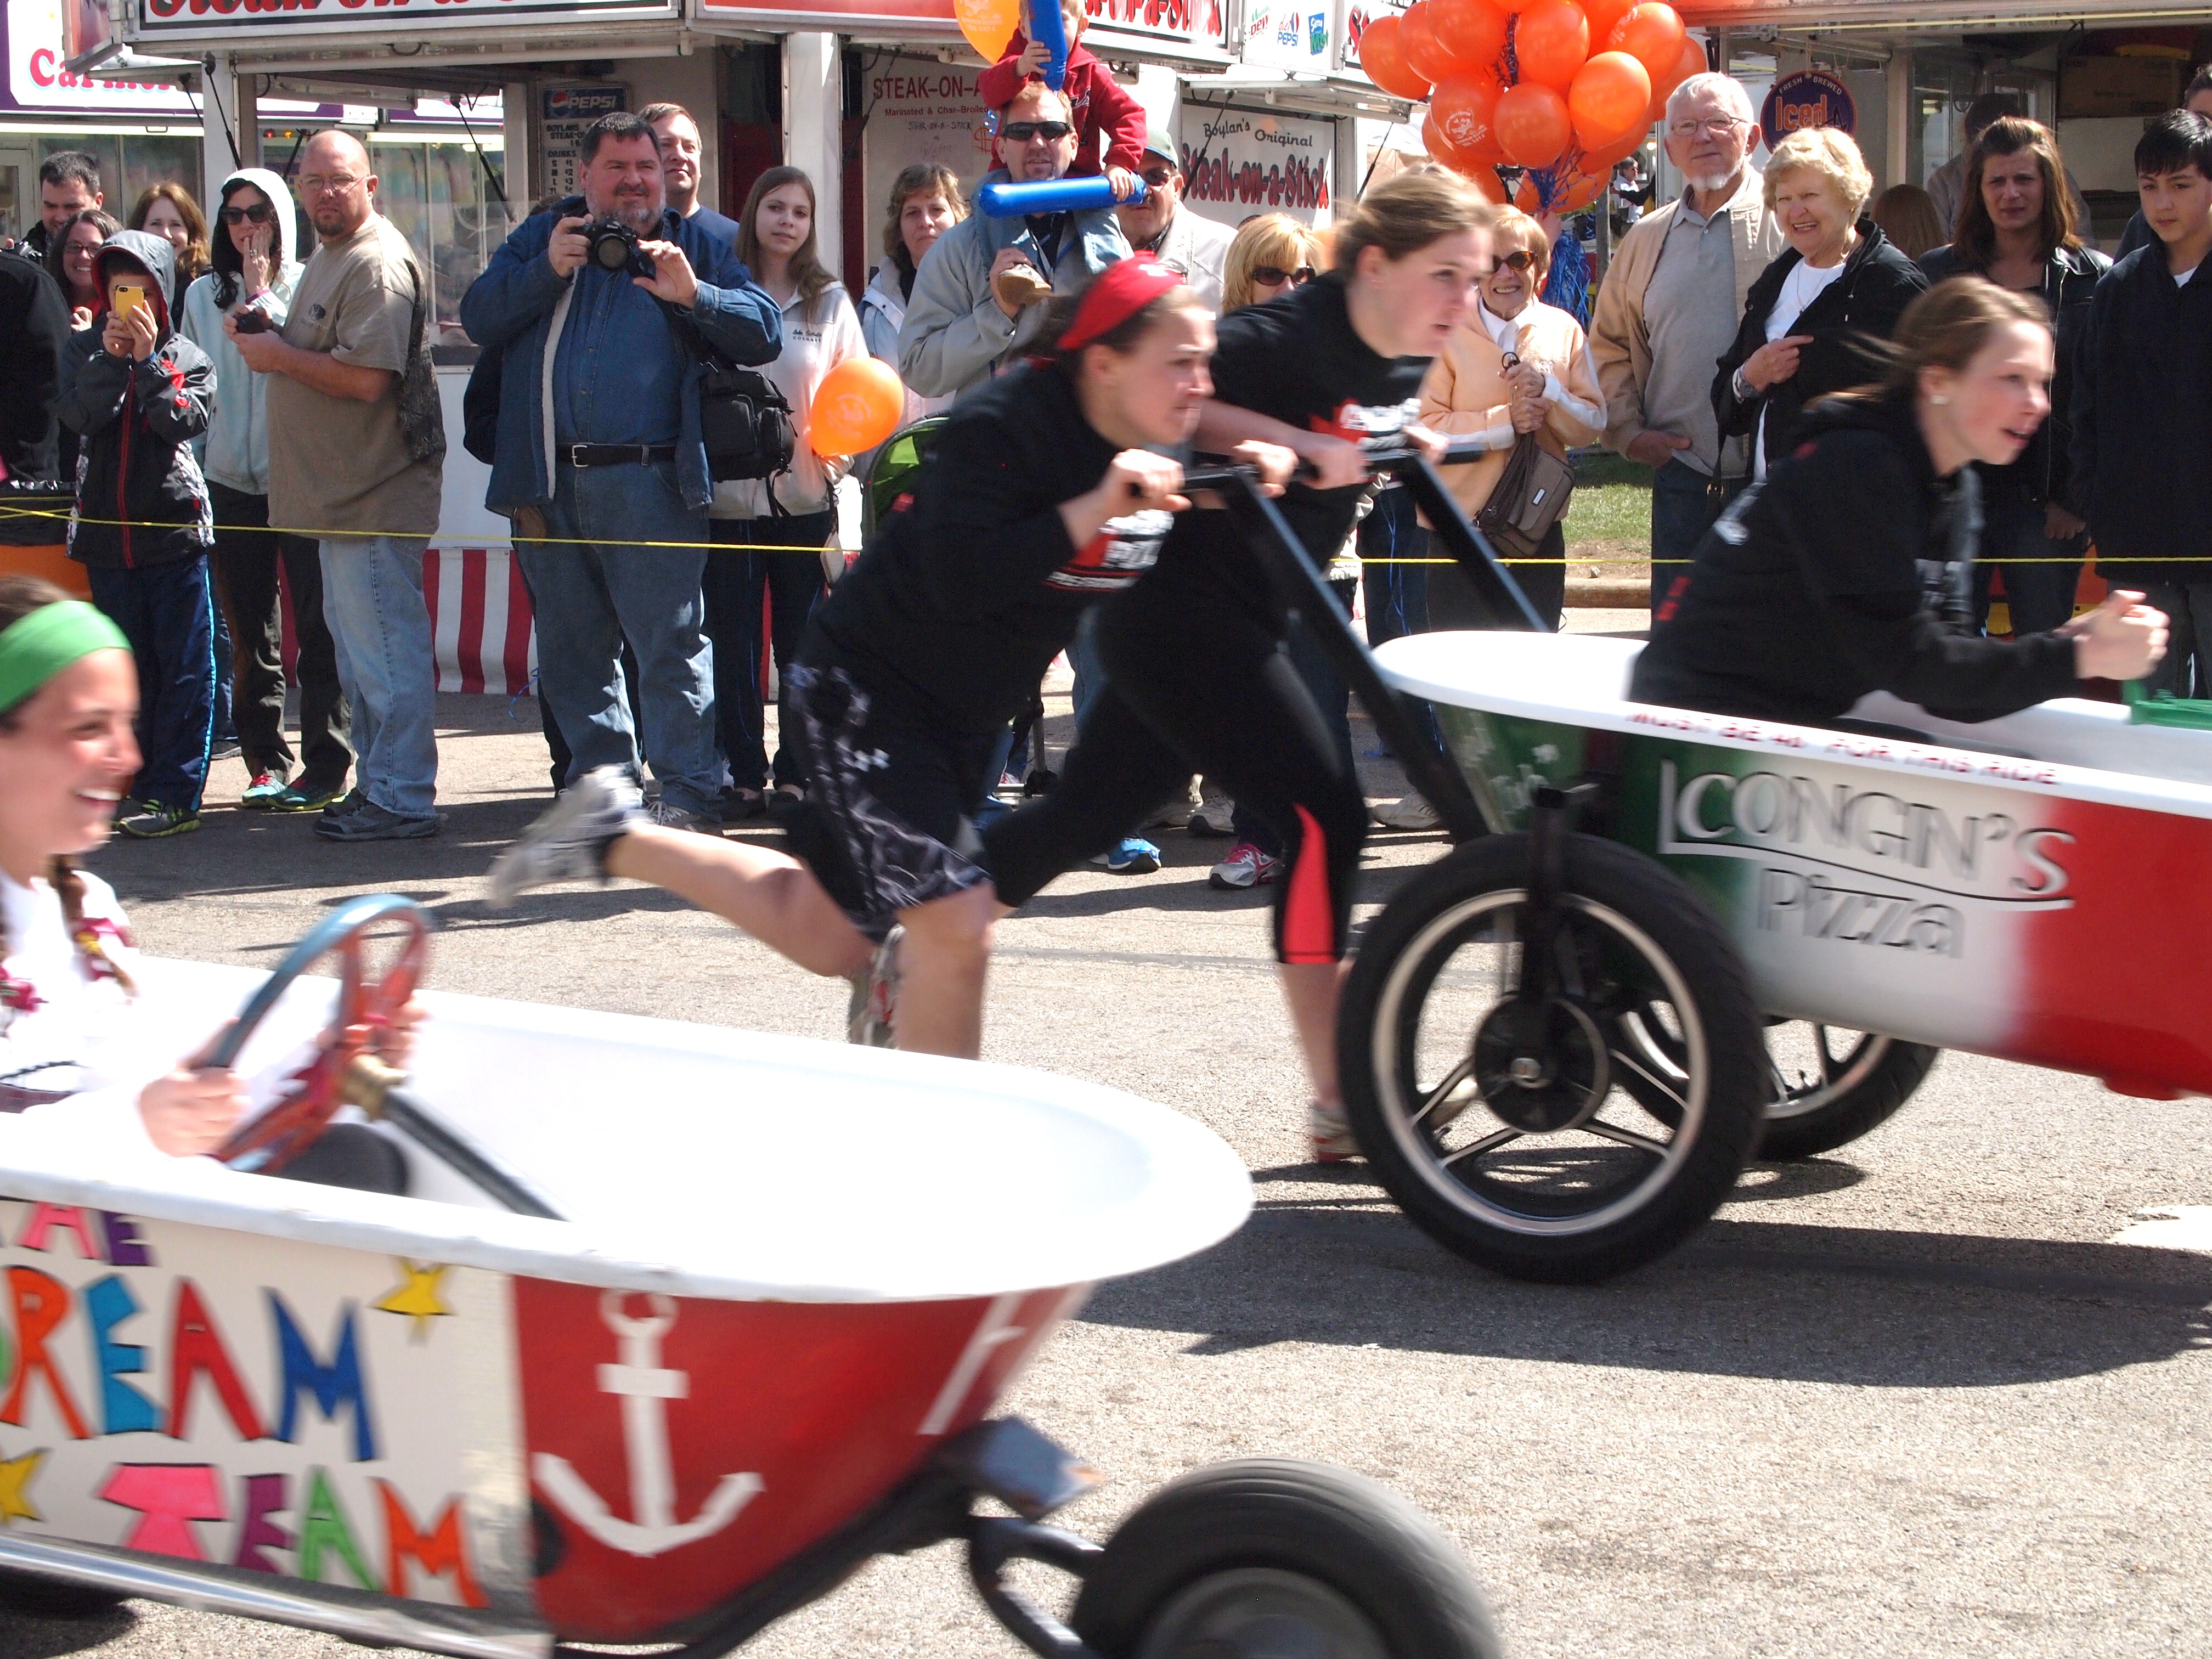 The Maple Festival Bathtub Race Turned On Some Good Clean